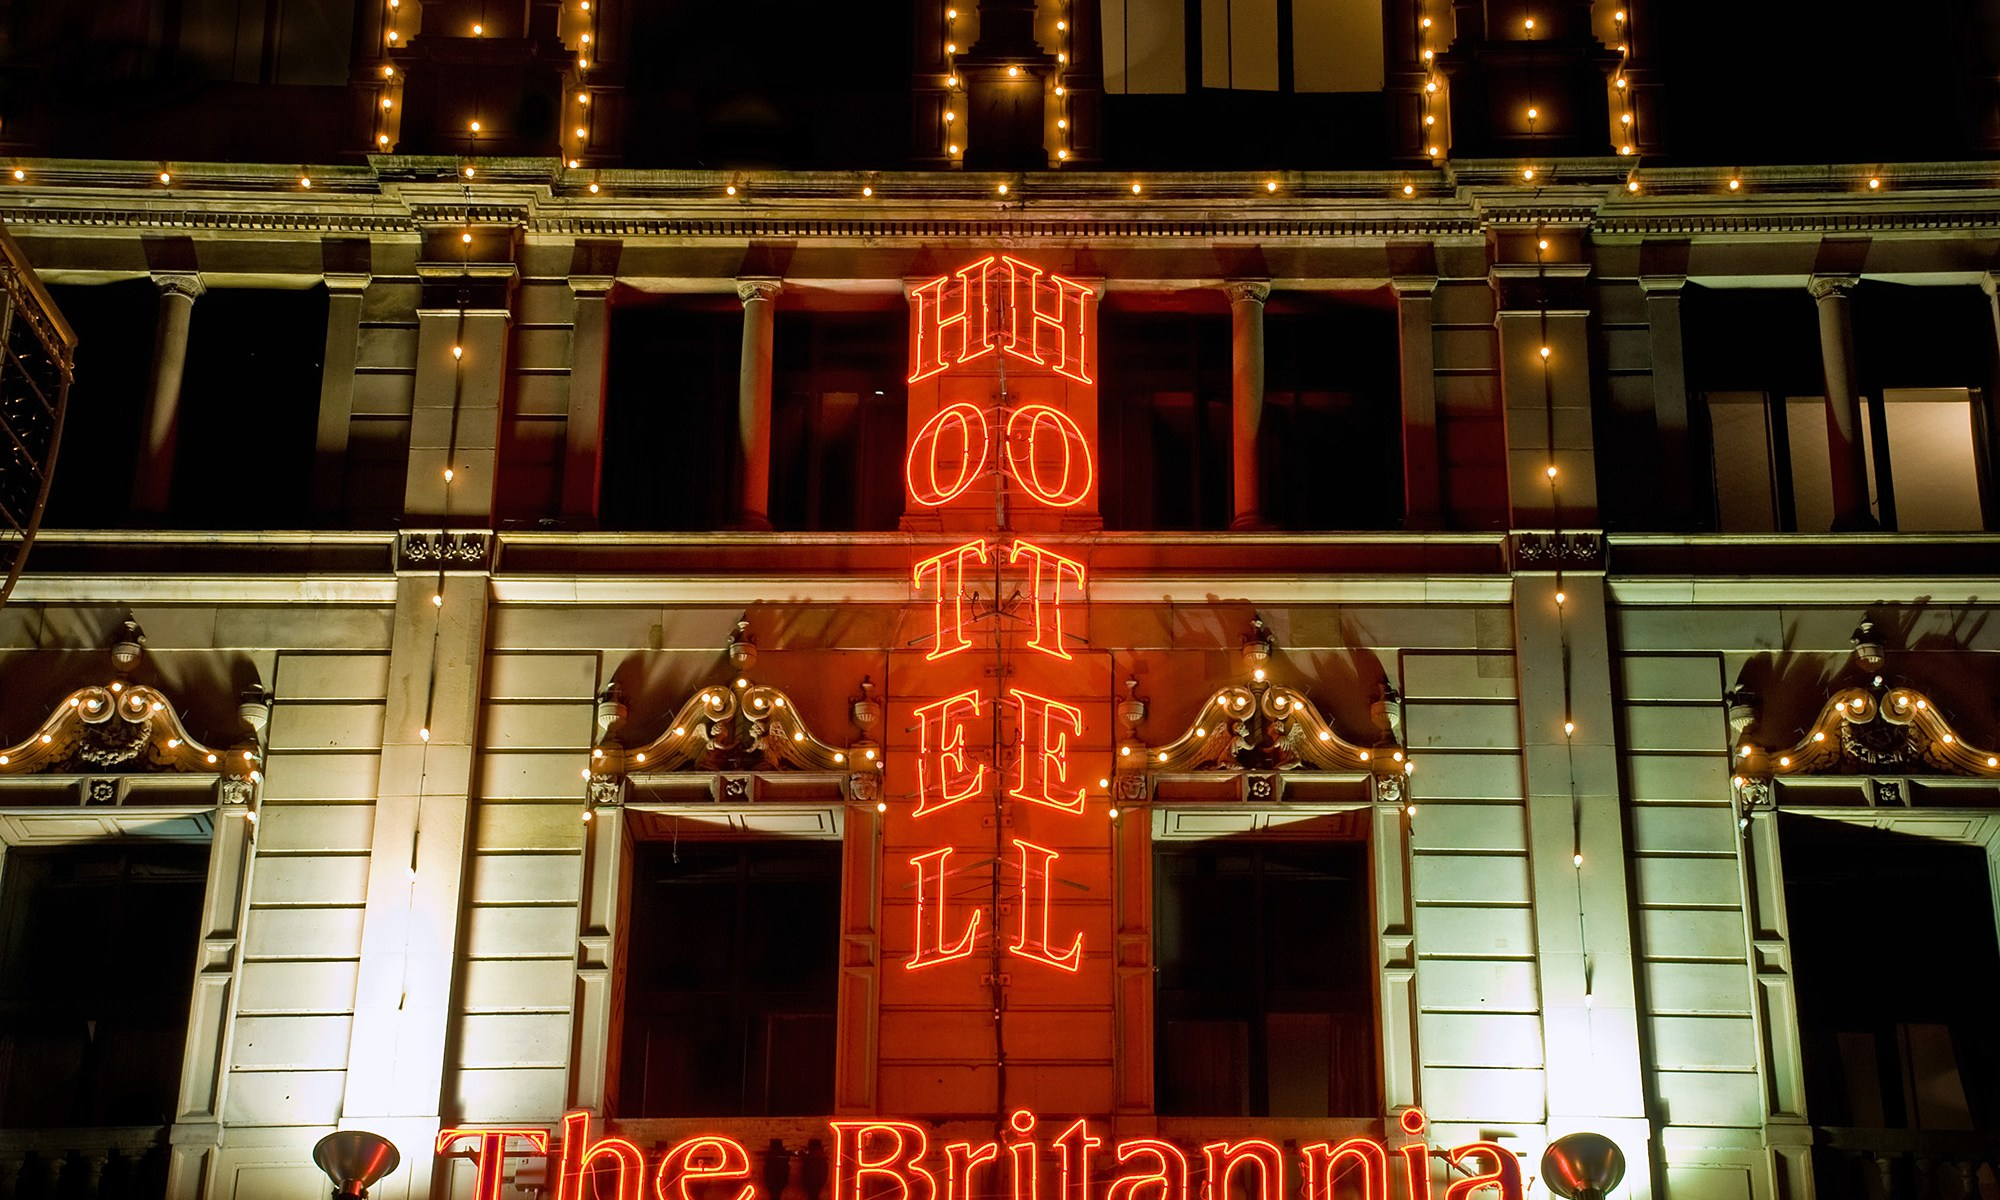 The Royal Britannia Hotel Sign, Manchester